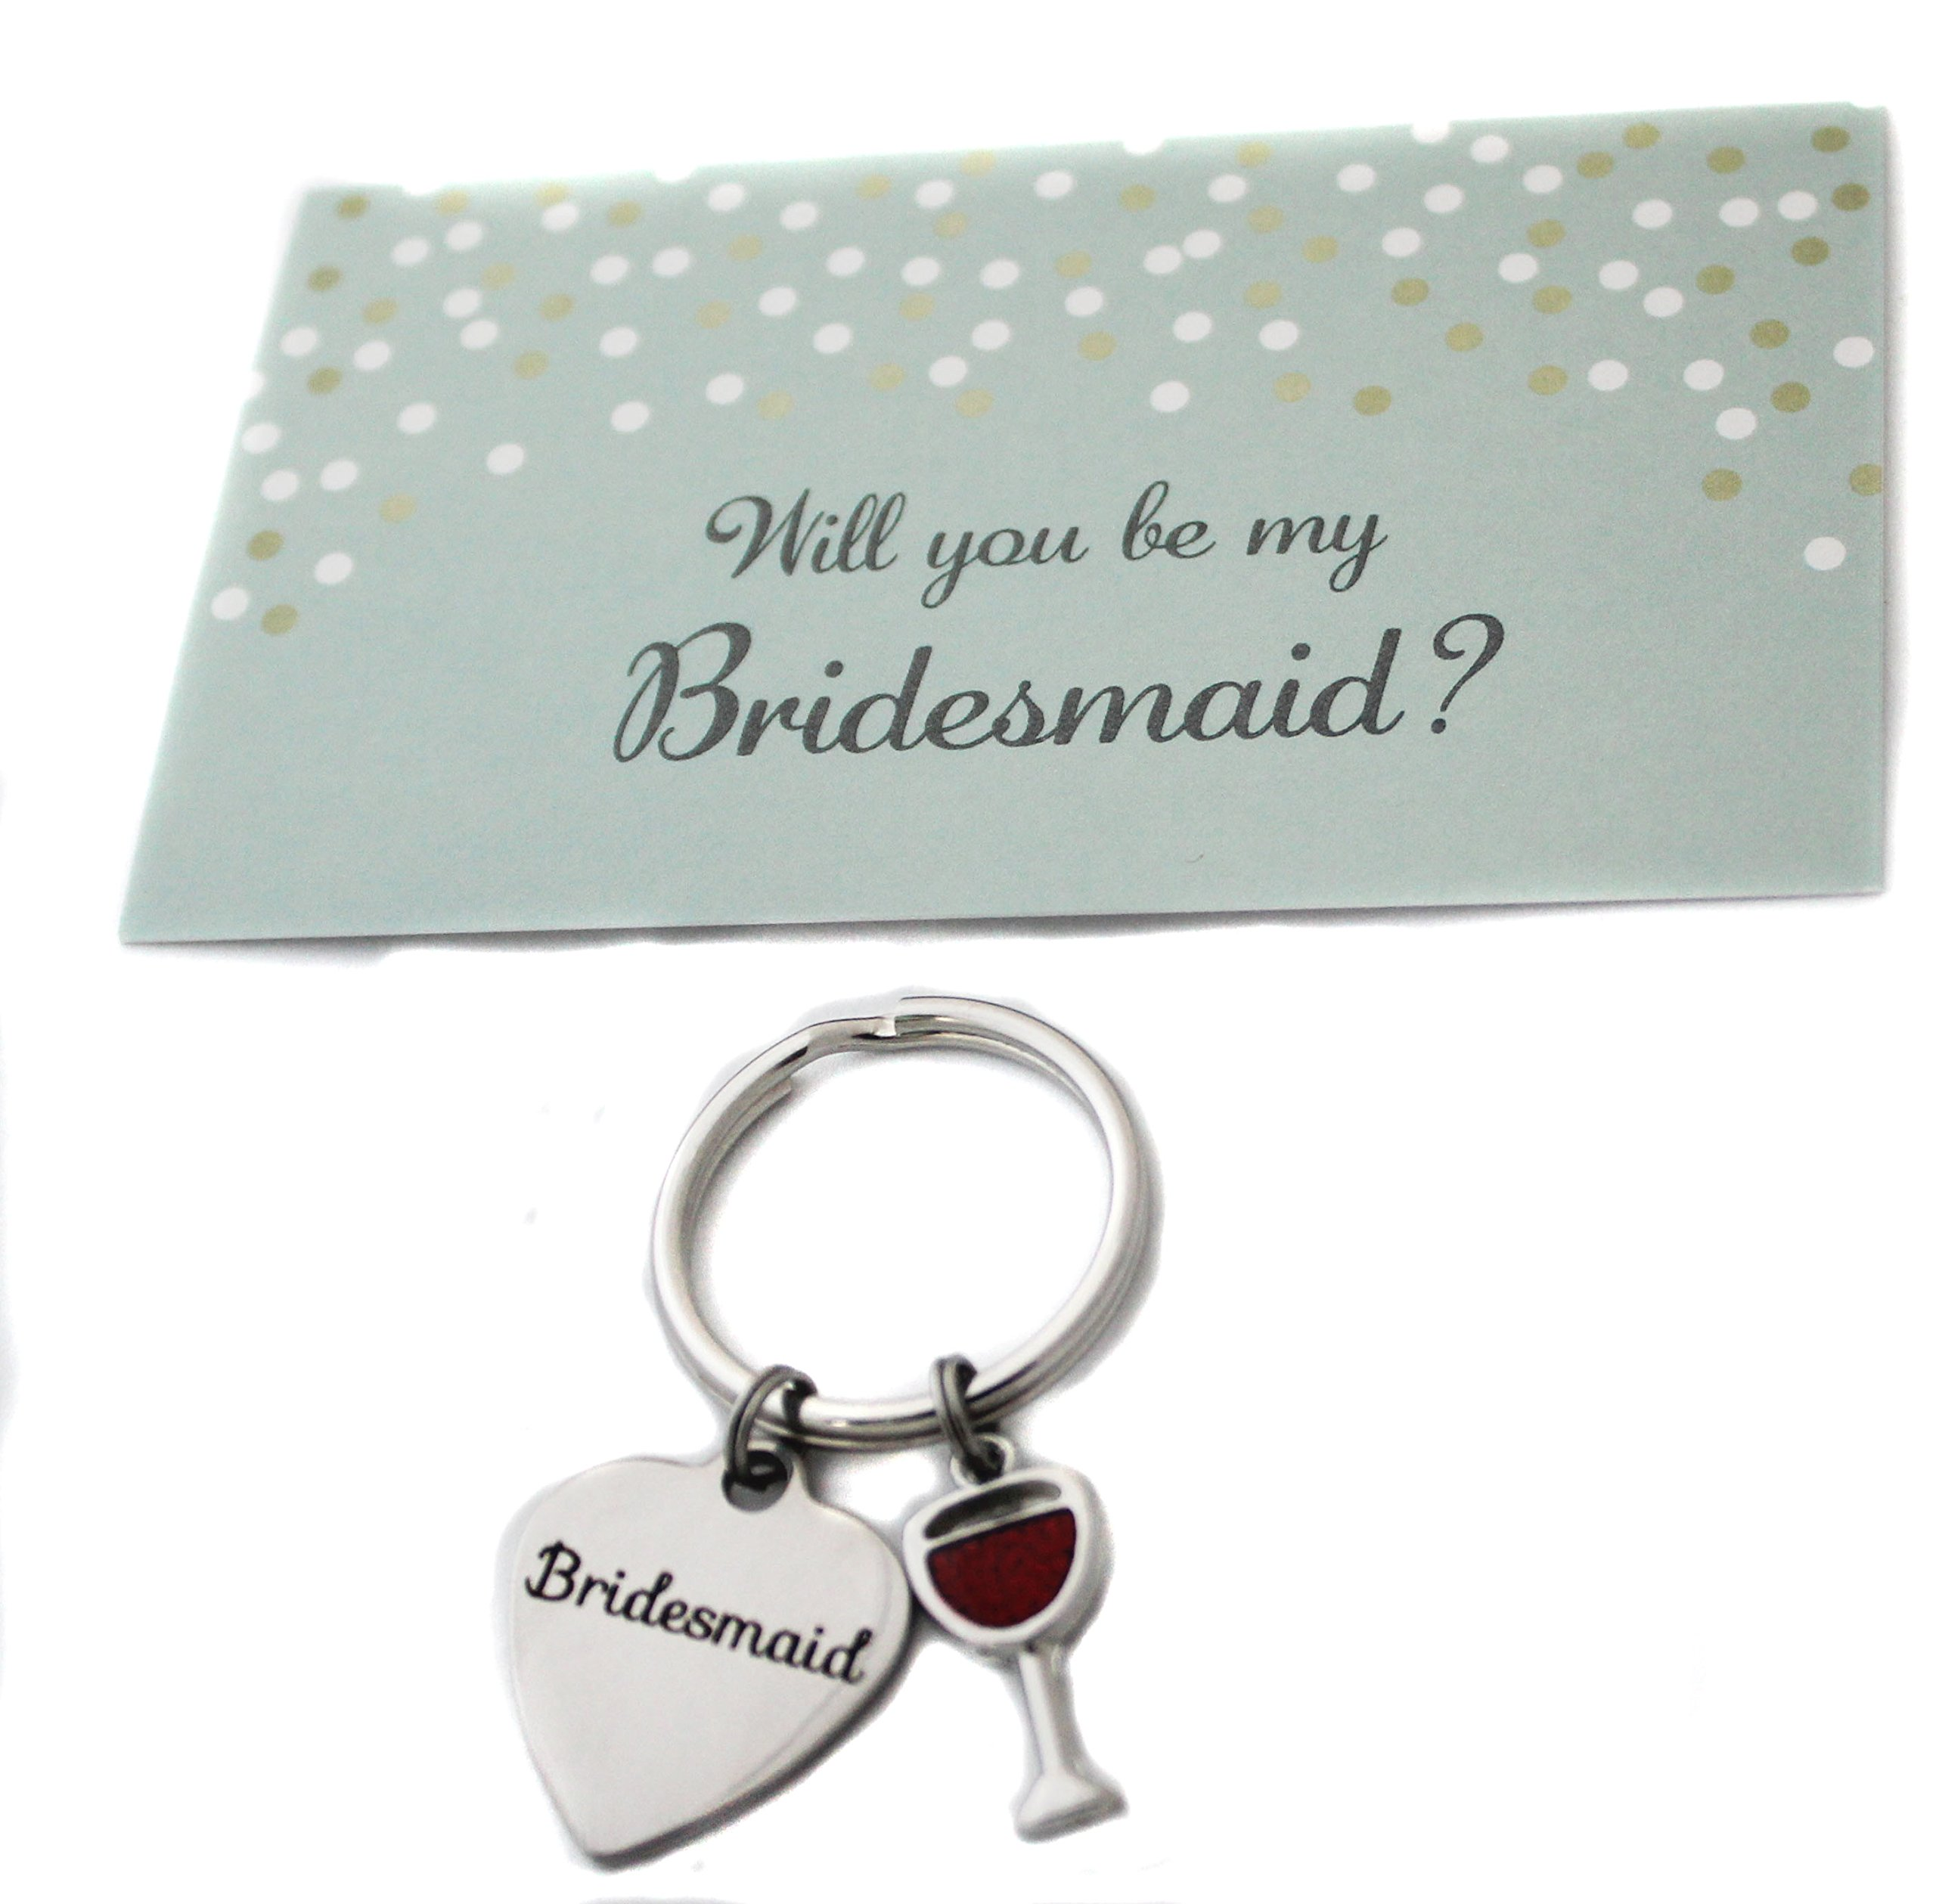 Heart Projects Stainless Steel Bridesmaid Wine Charm Keychain Bag Charm Wedding Party Gift